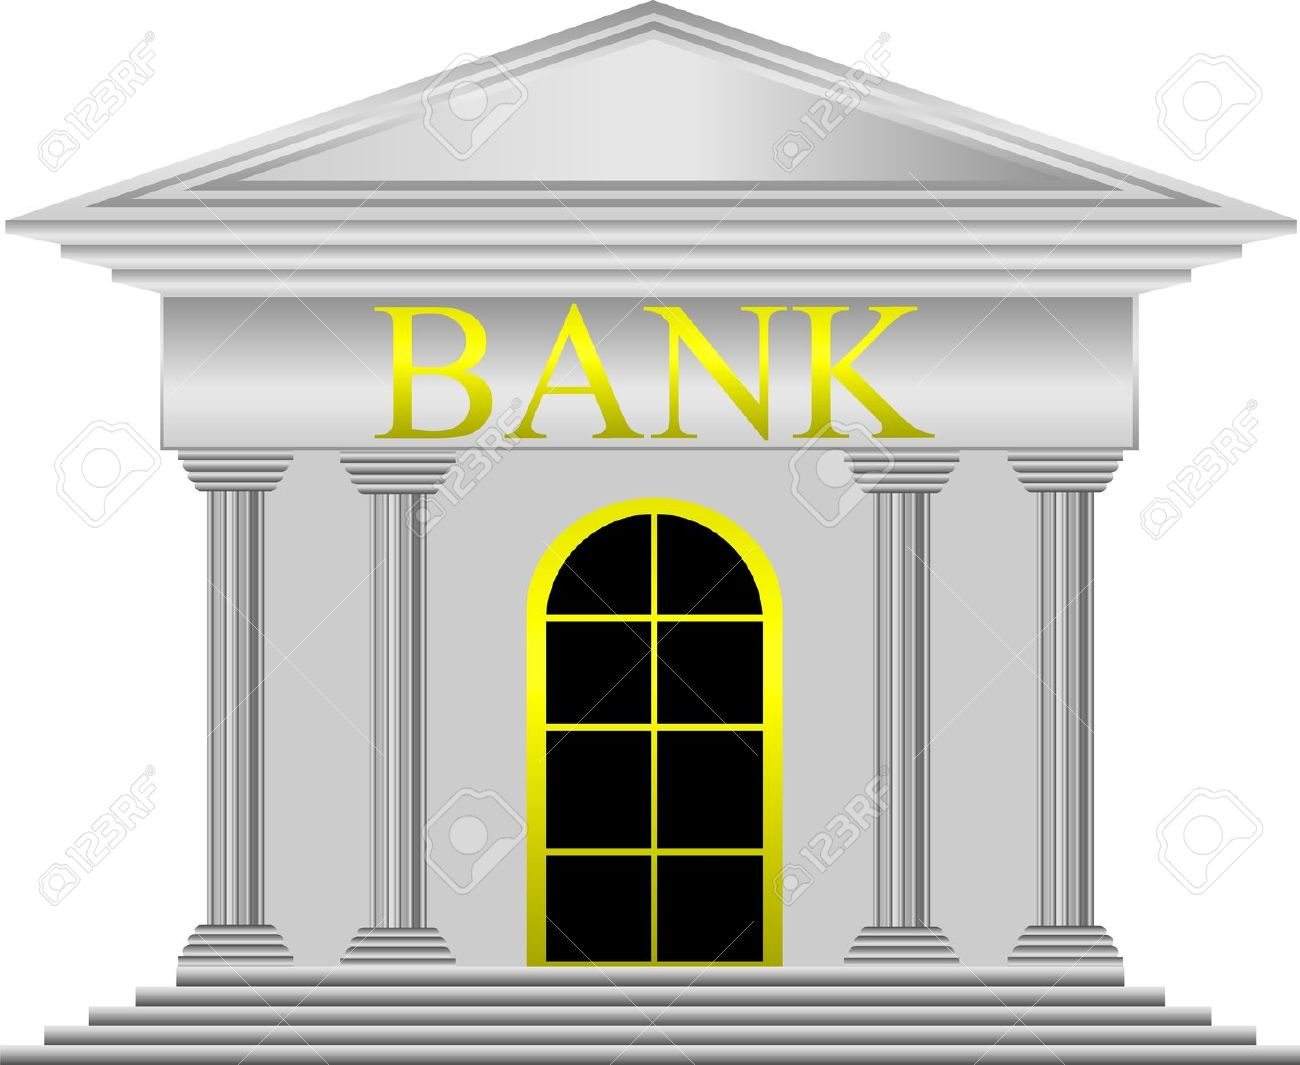 Bank clipart. Simple clip art of